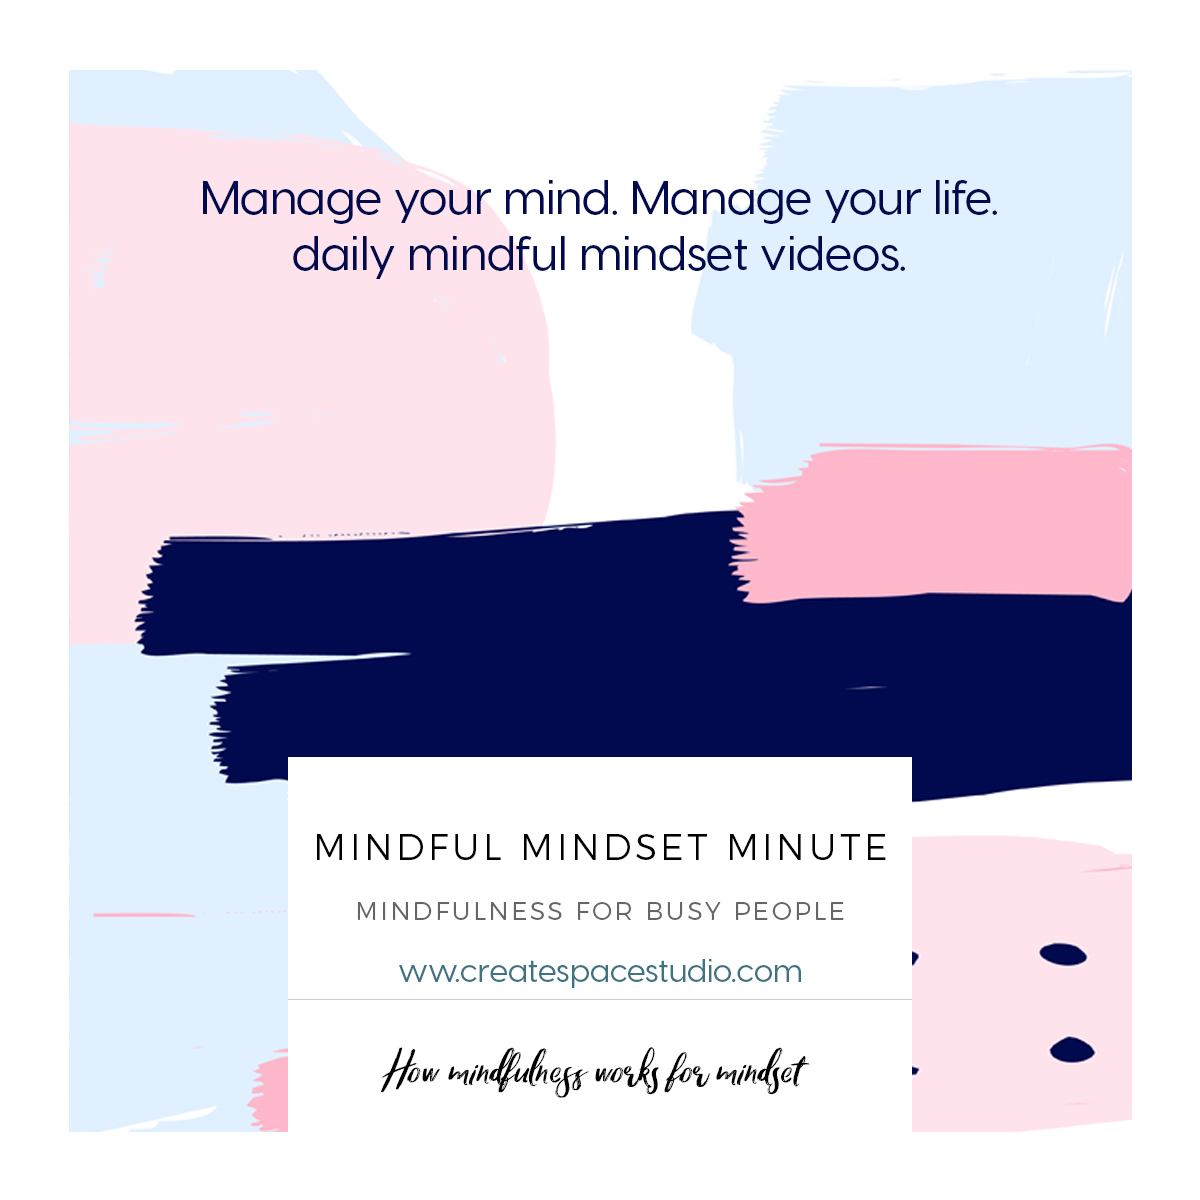 mindfulmindsetworks.jpg